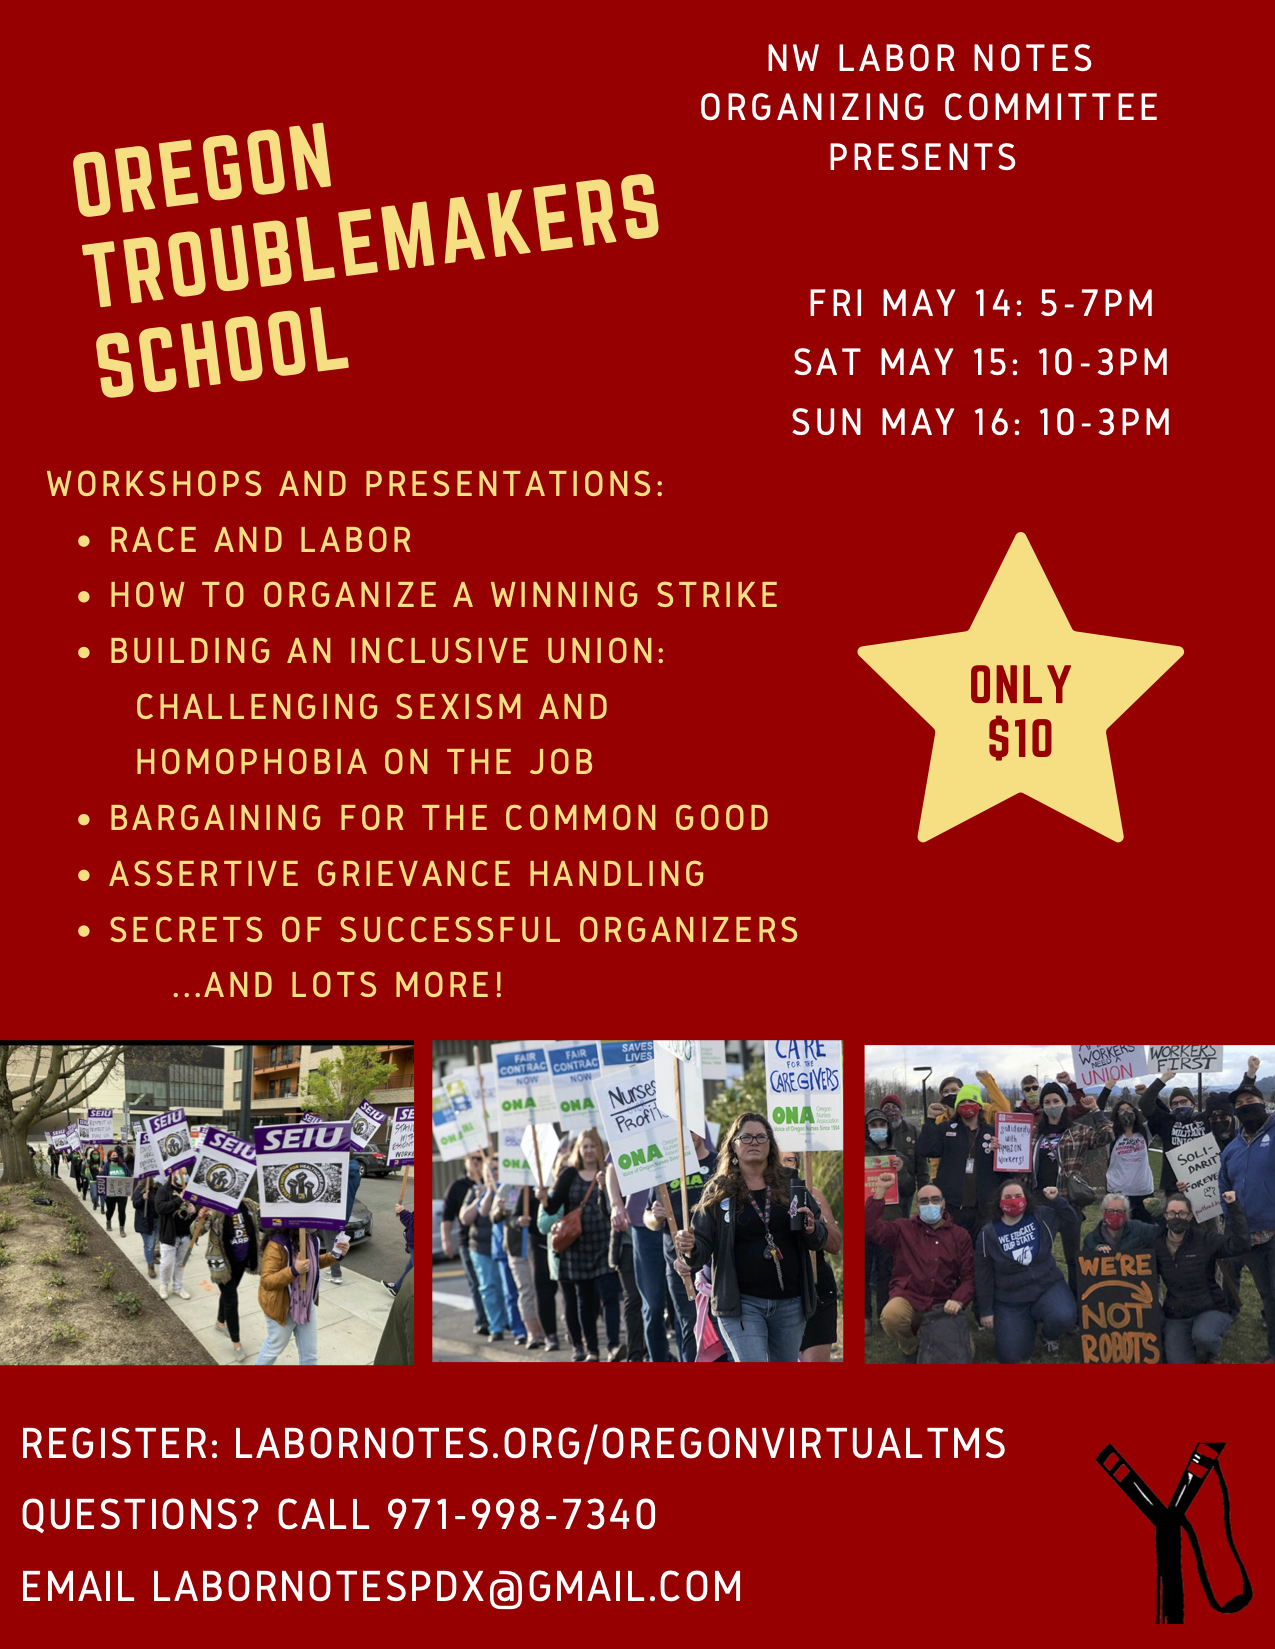 Oregon Troublemakers School